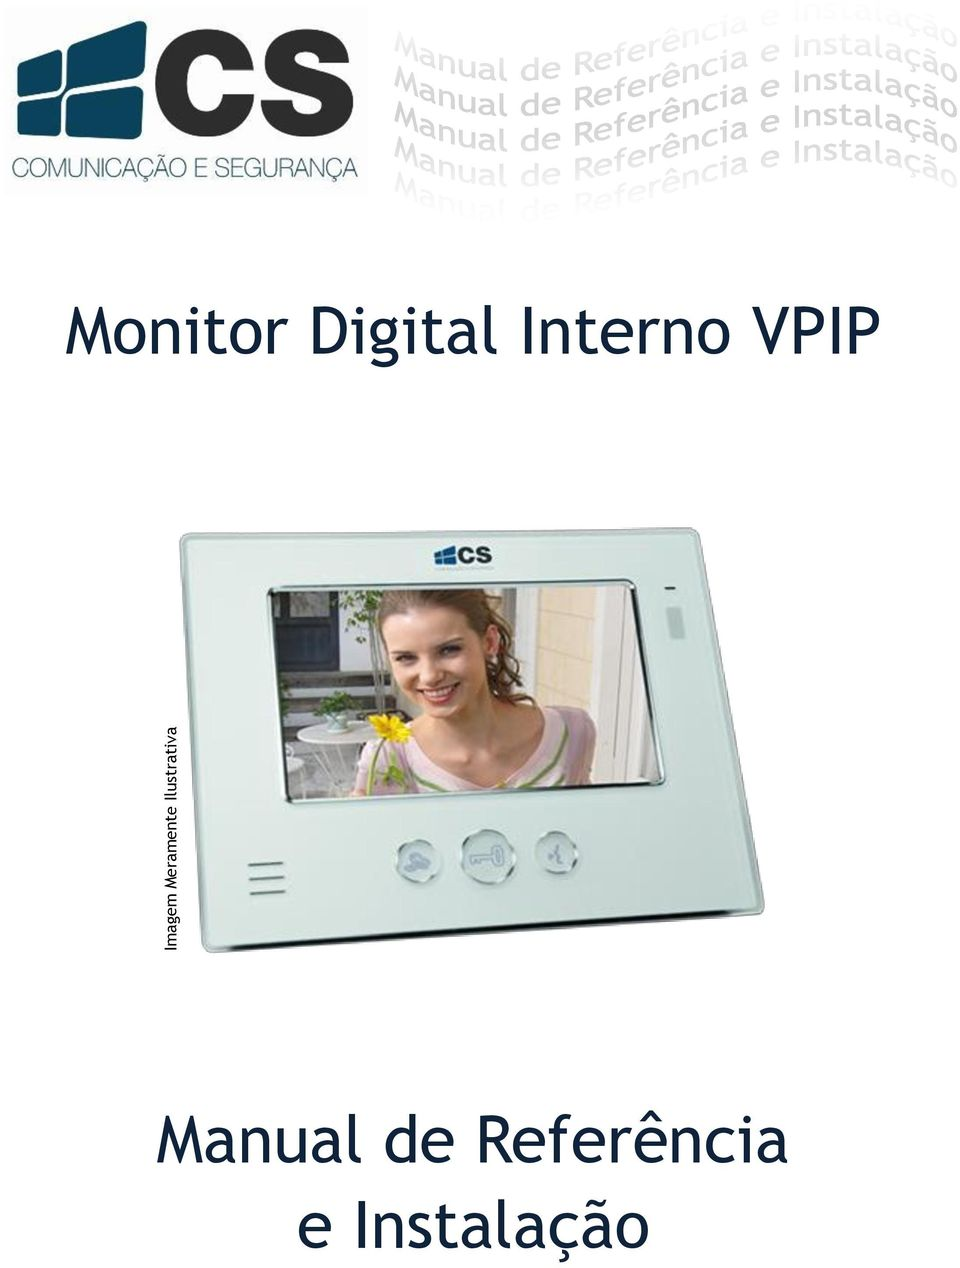 Digital Interno VPIP